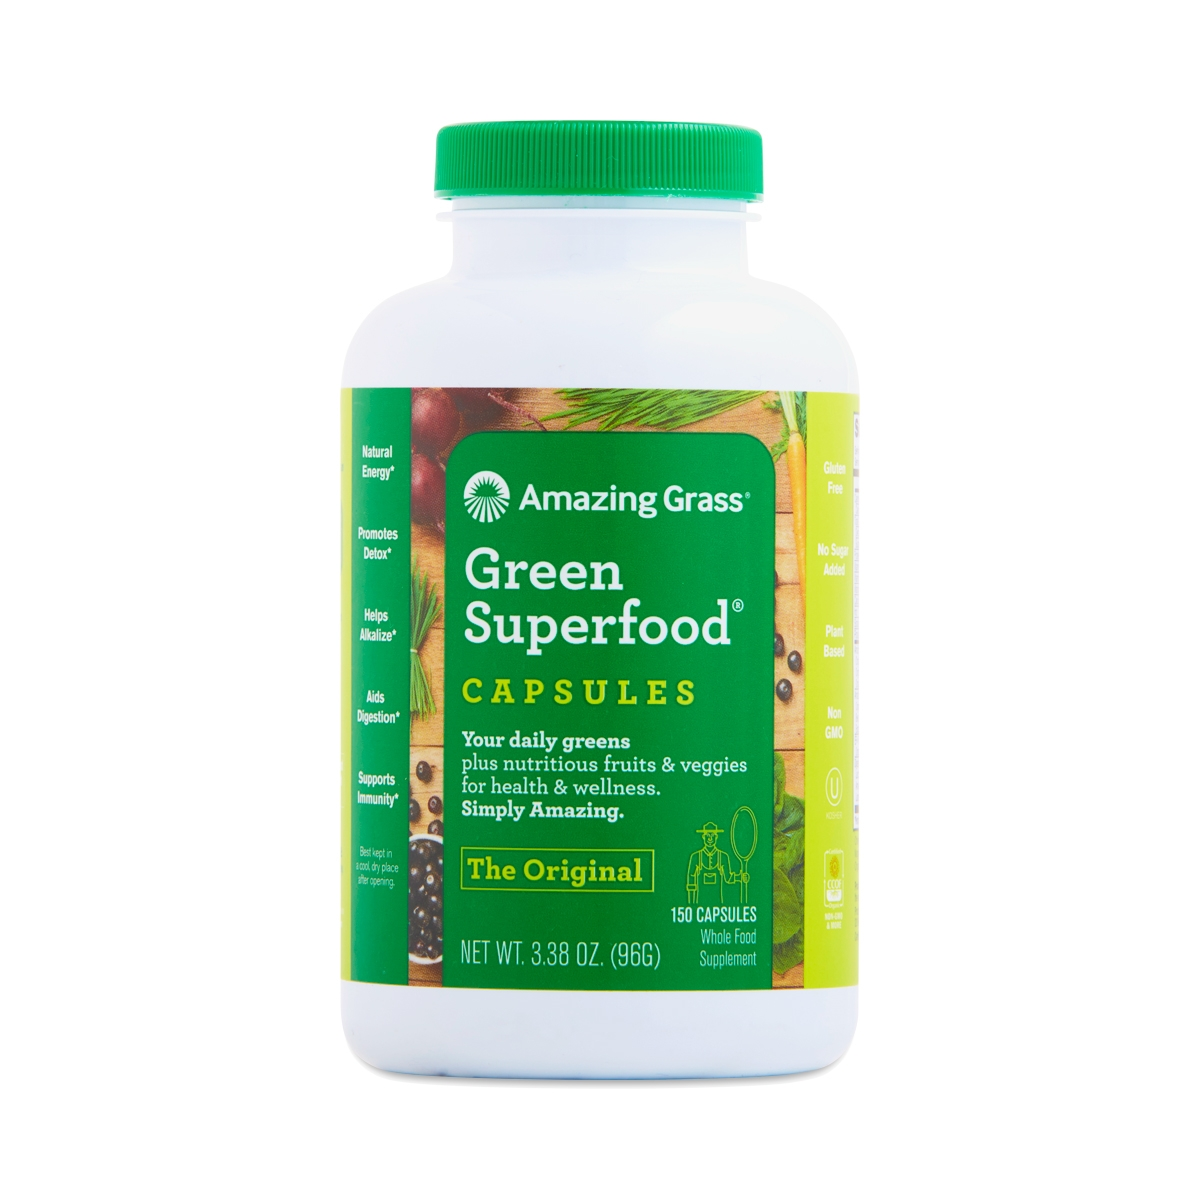 Green Superfood Capsules